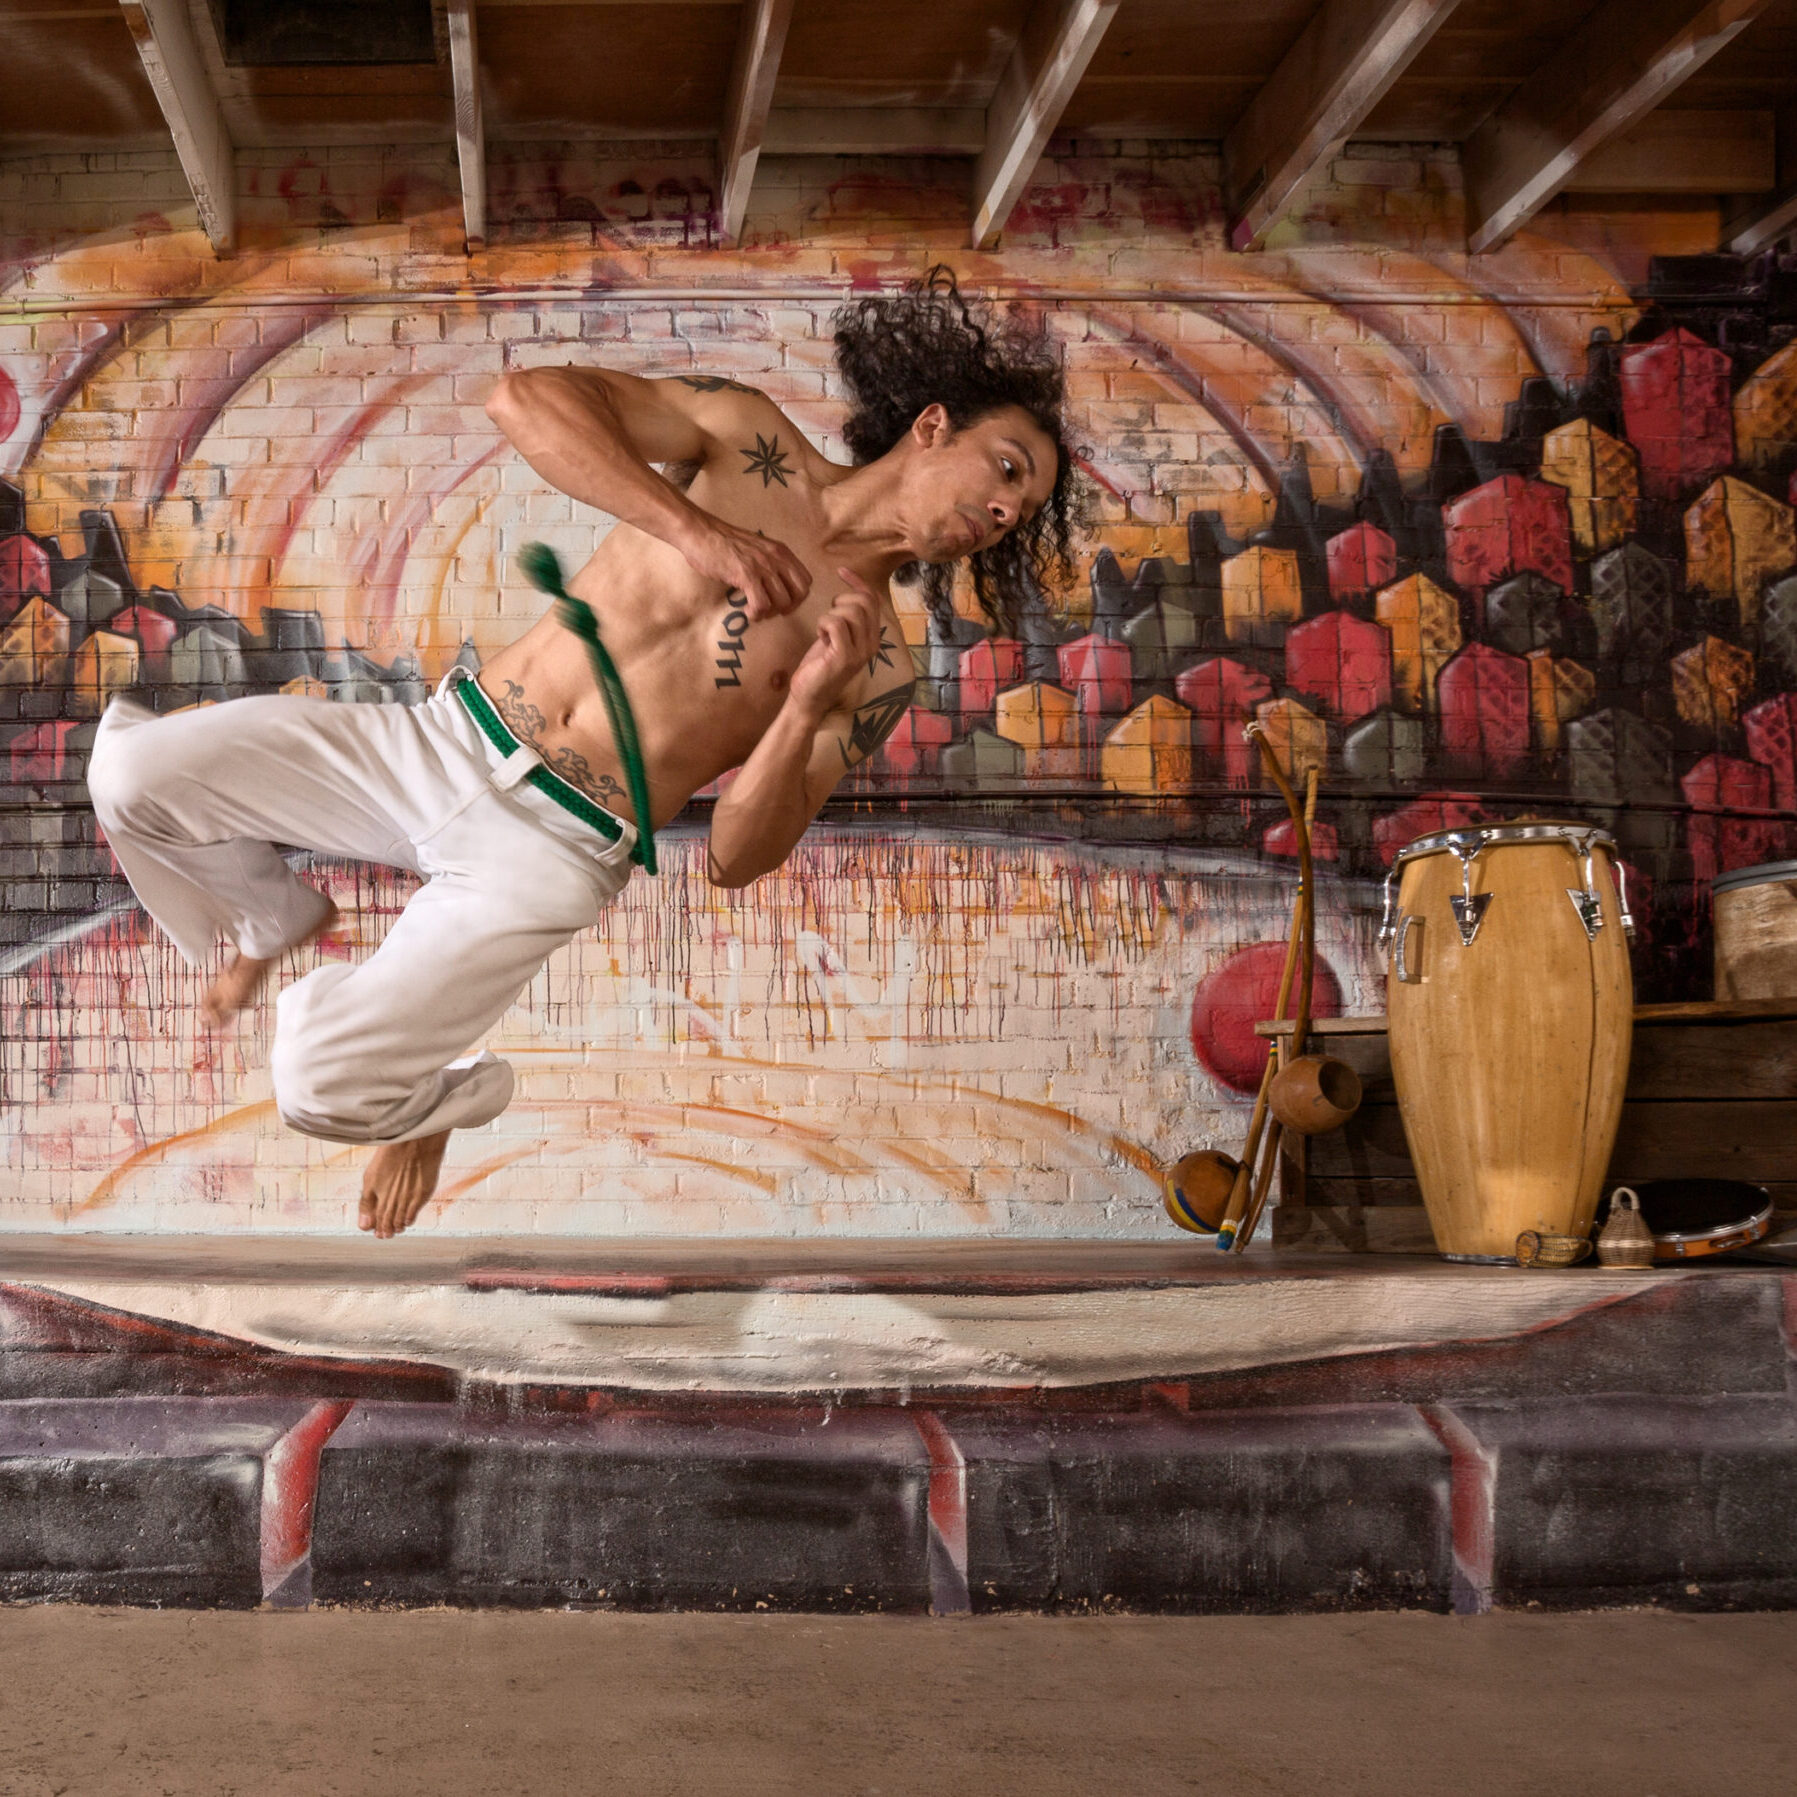 Handsome mixed capoeira performer flipping mid air